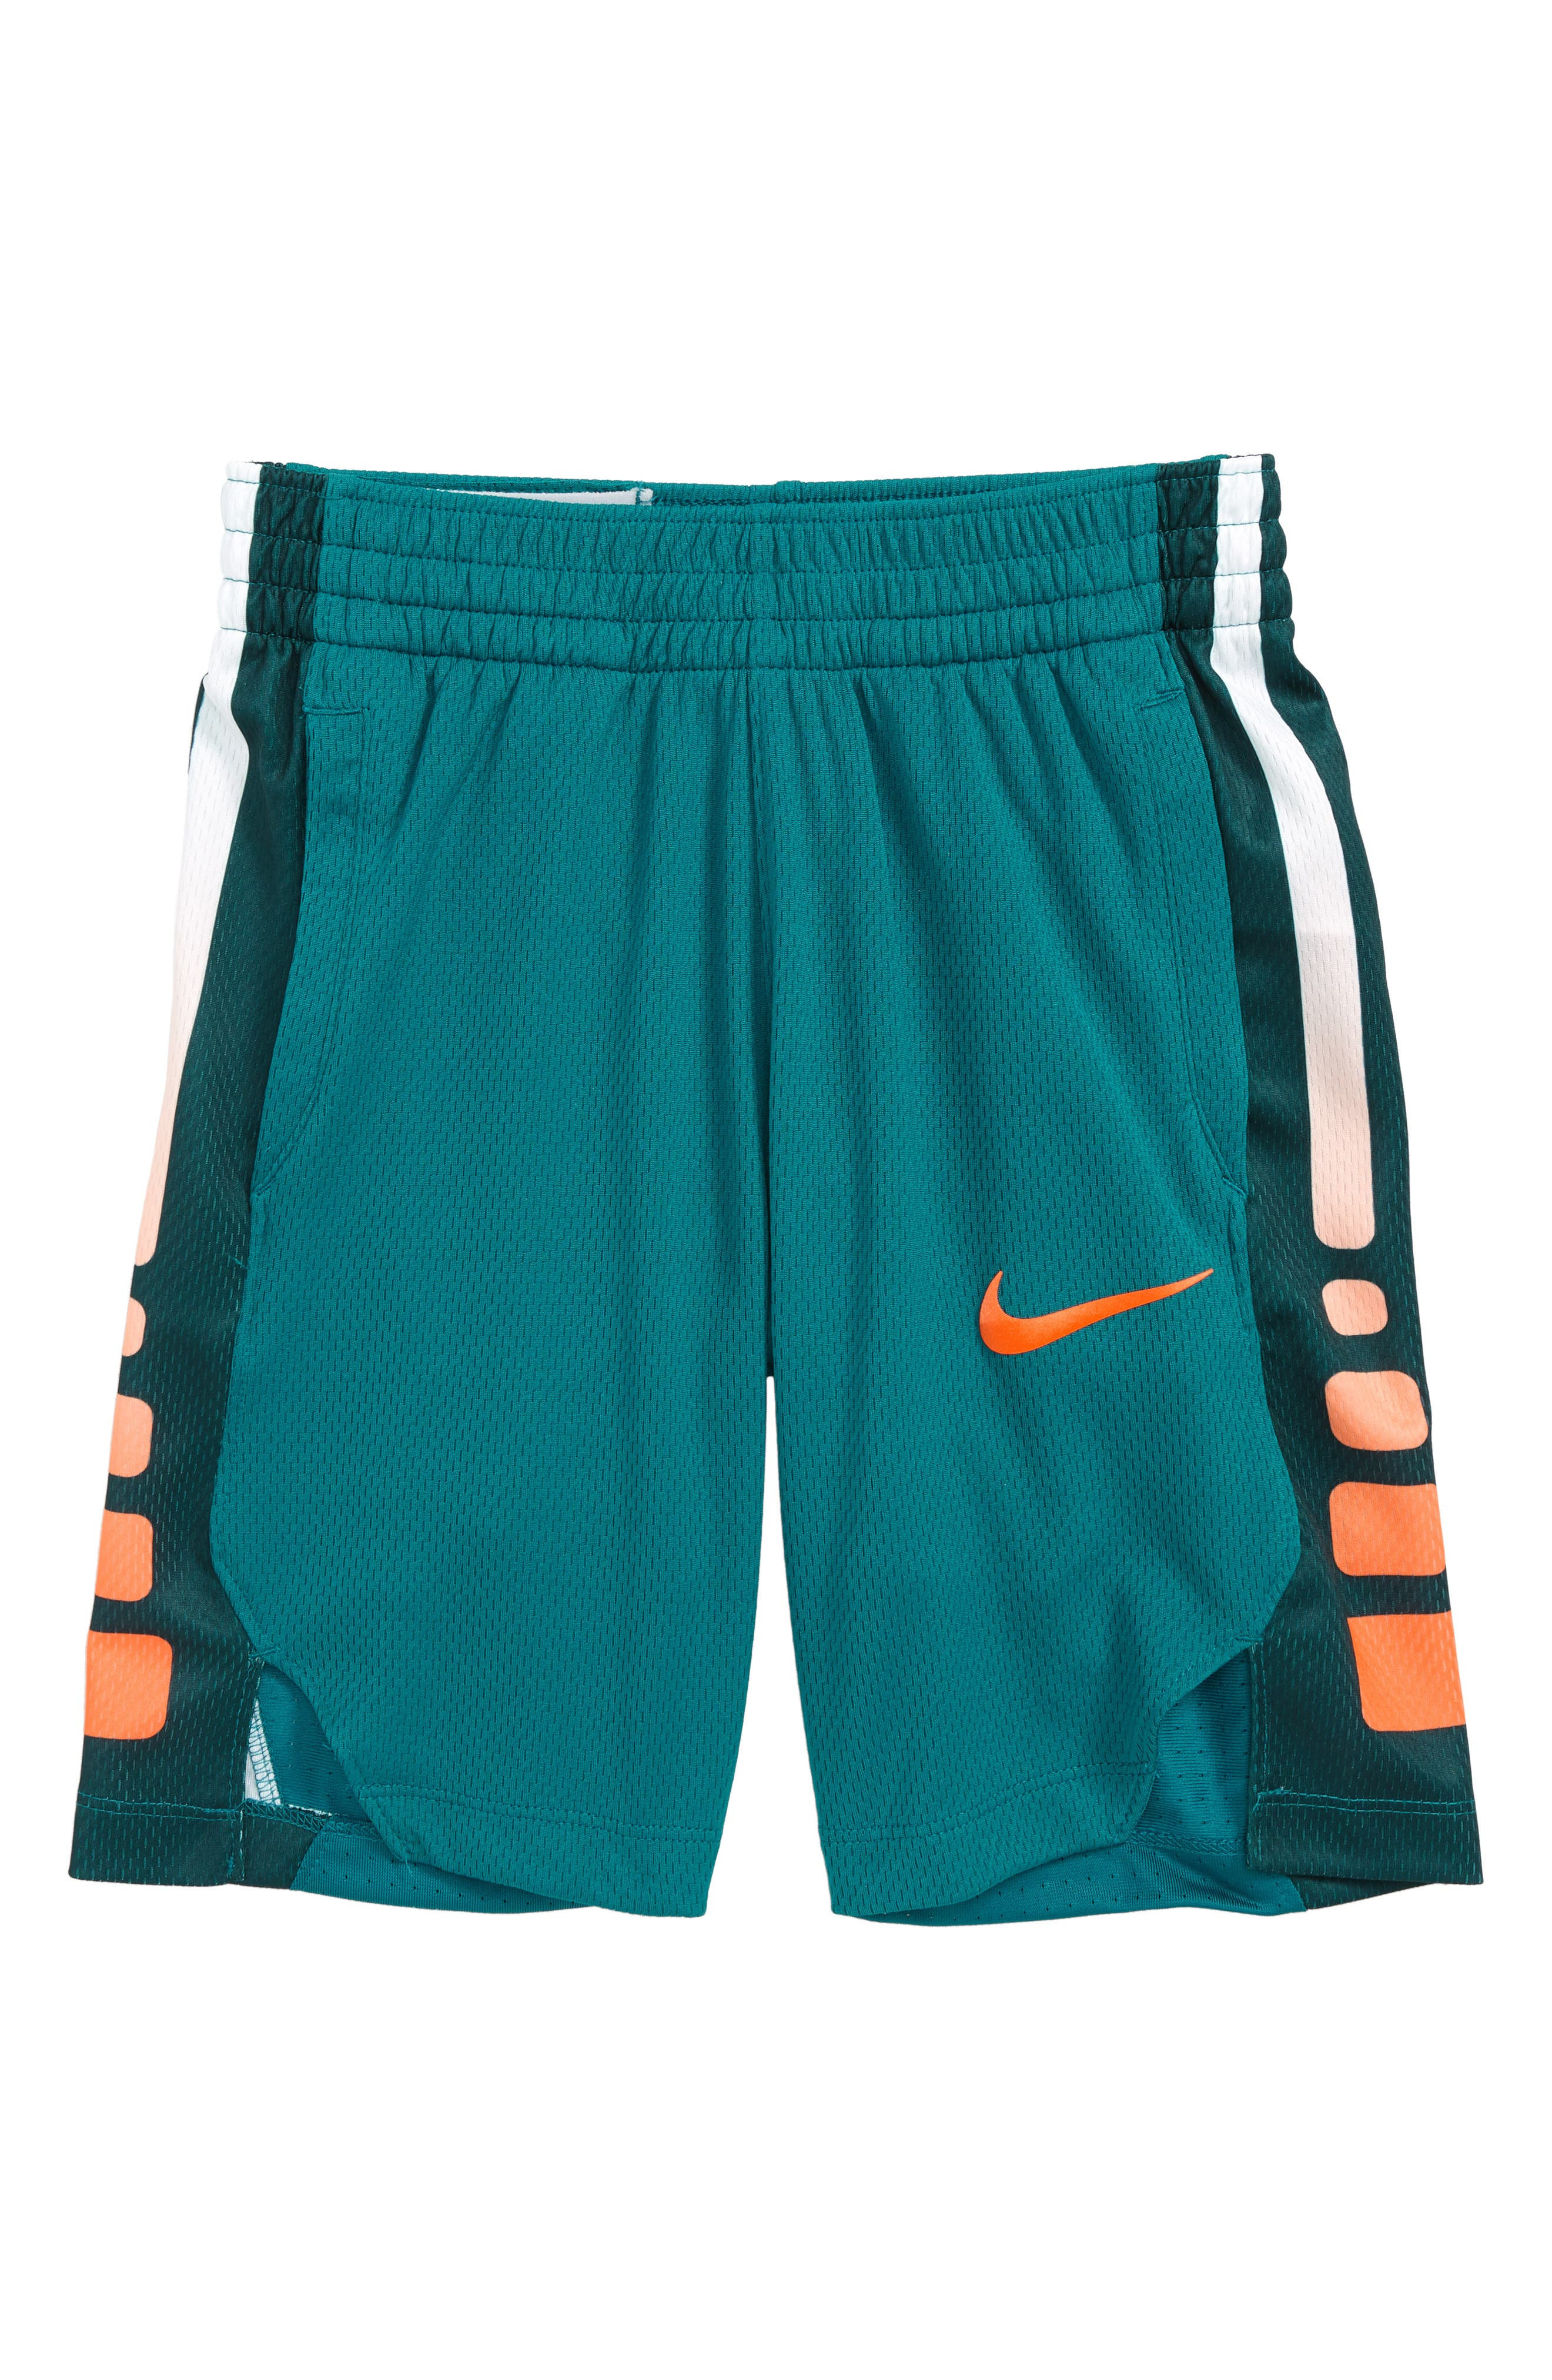 Dry Elite Basketball Shorts,                             Main thumbnail 1, color,                             GEODE TEAL/ CONE